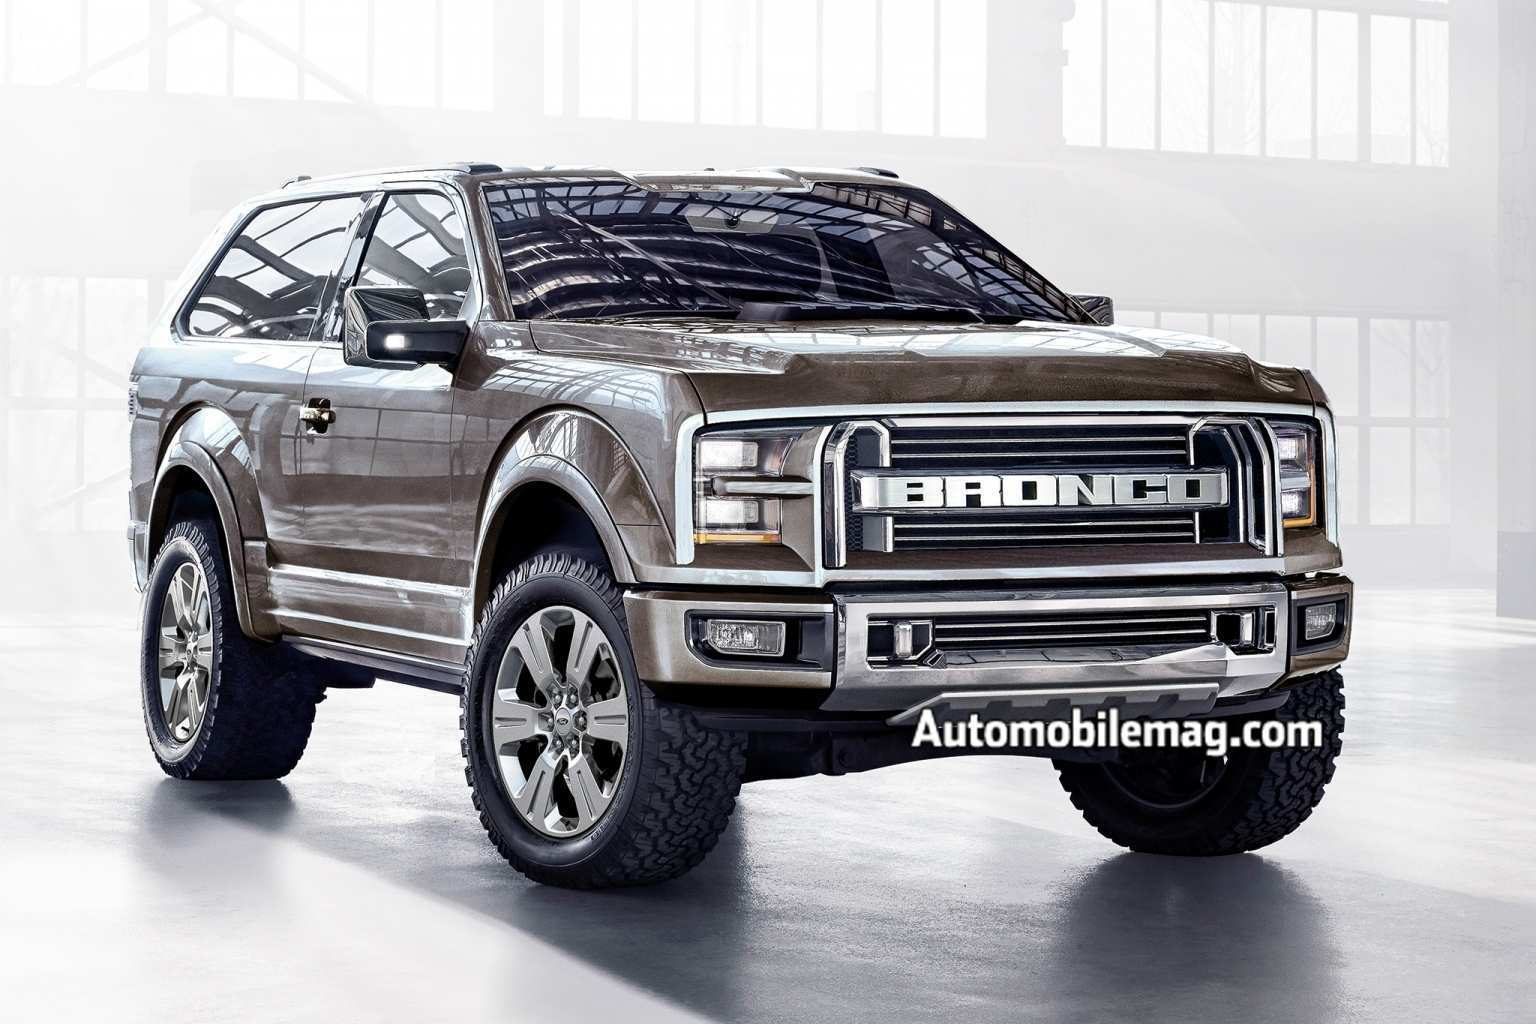 97 Gallery of The 2019 Ford Bronco Interior Review Photos for The 2019 Ford Bronco Interior Review